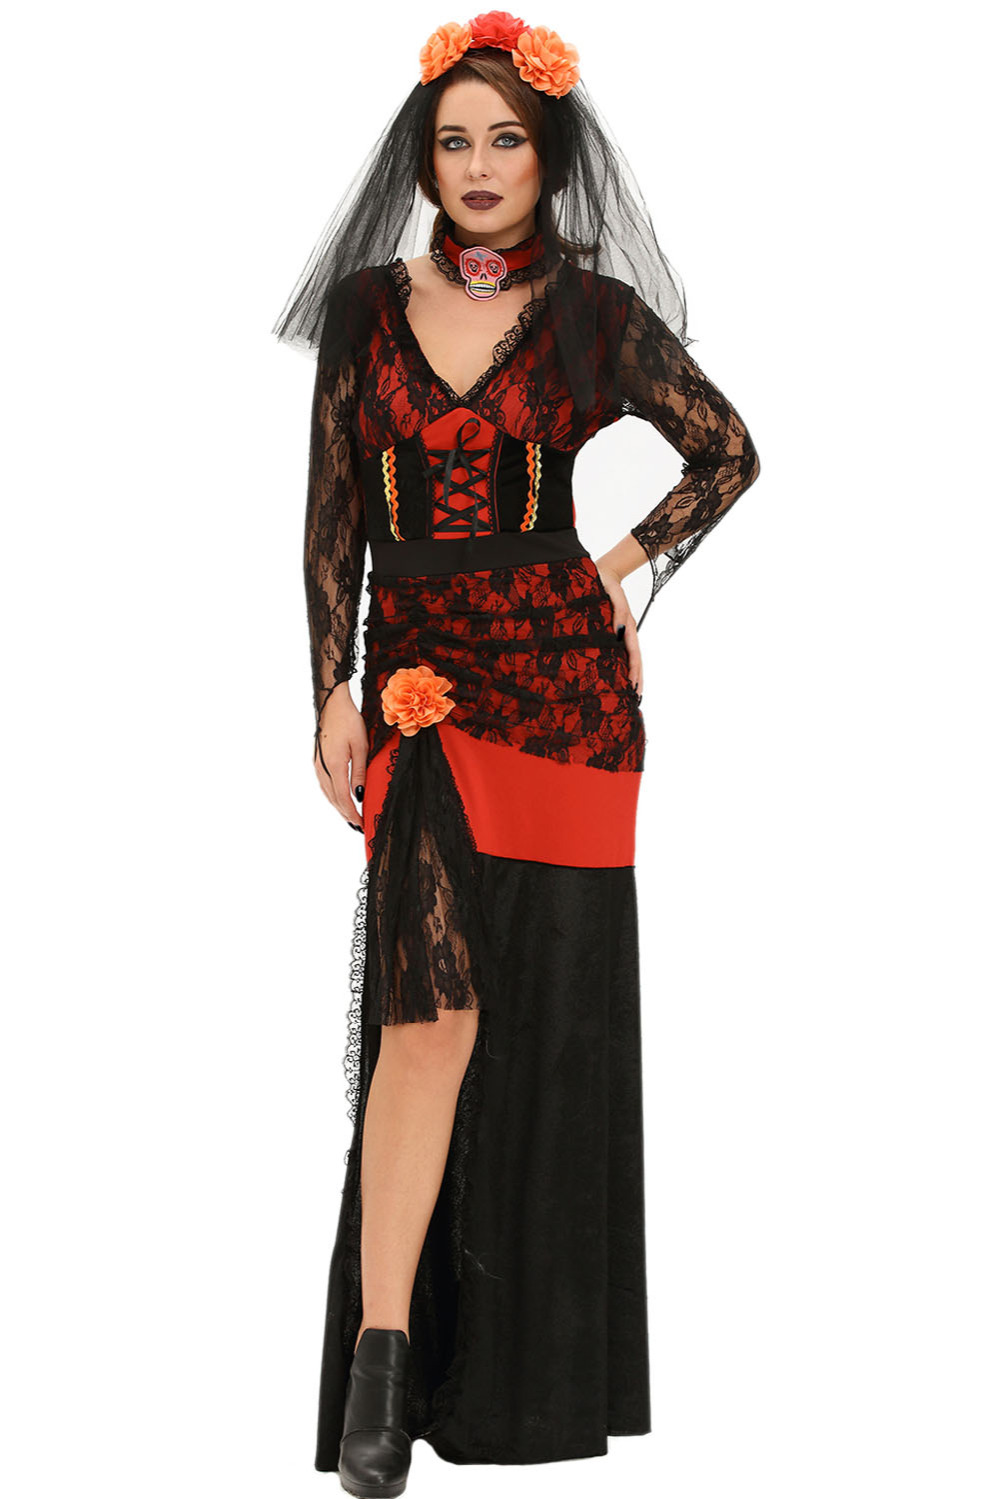 Compare Prices on Womens Scary Halloween Costumes- Online Shopping ...